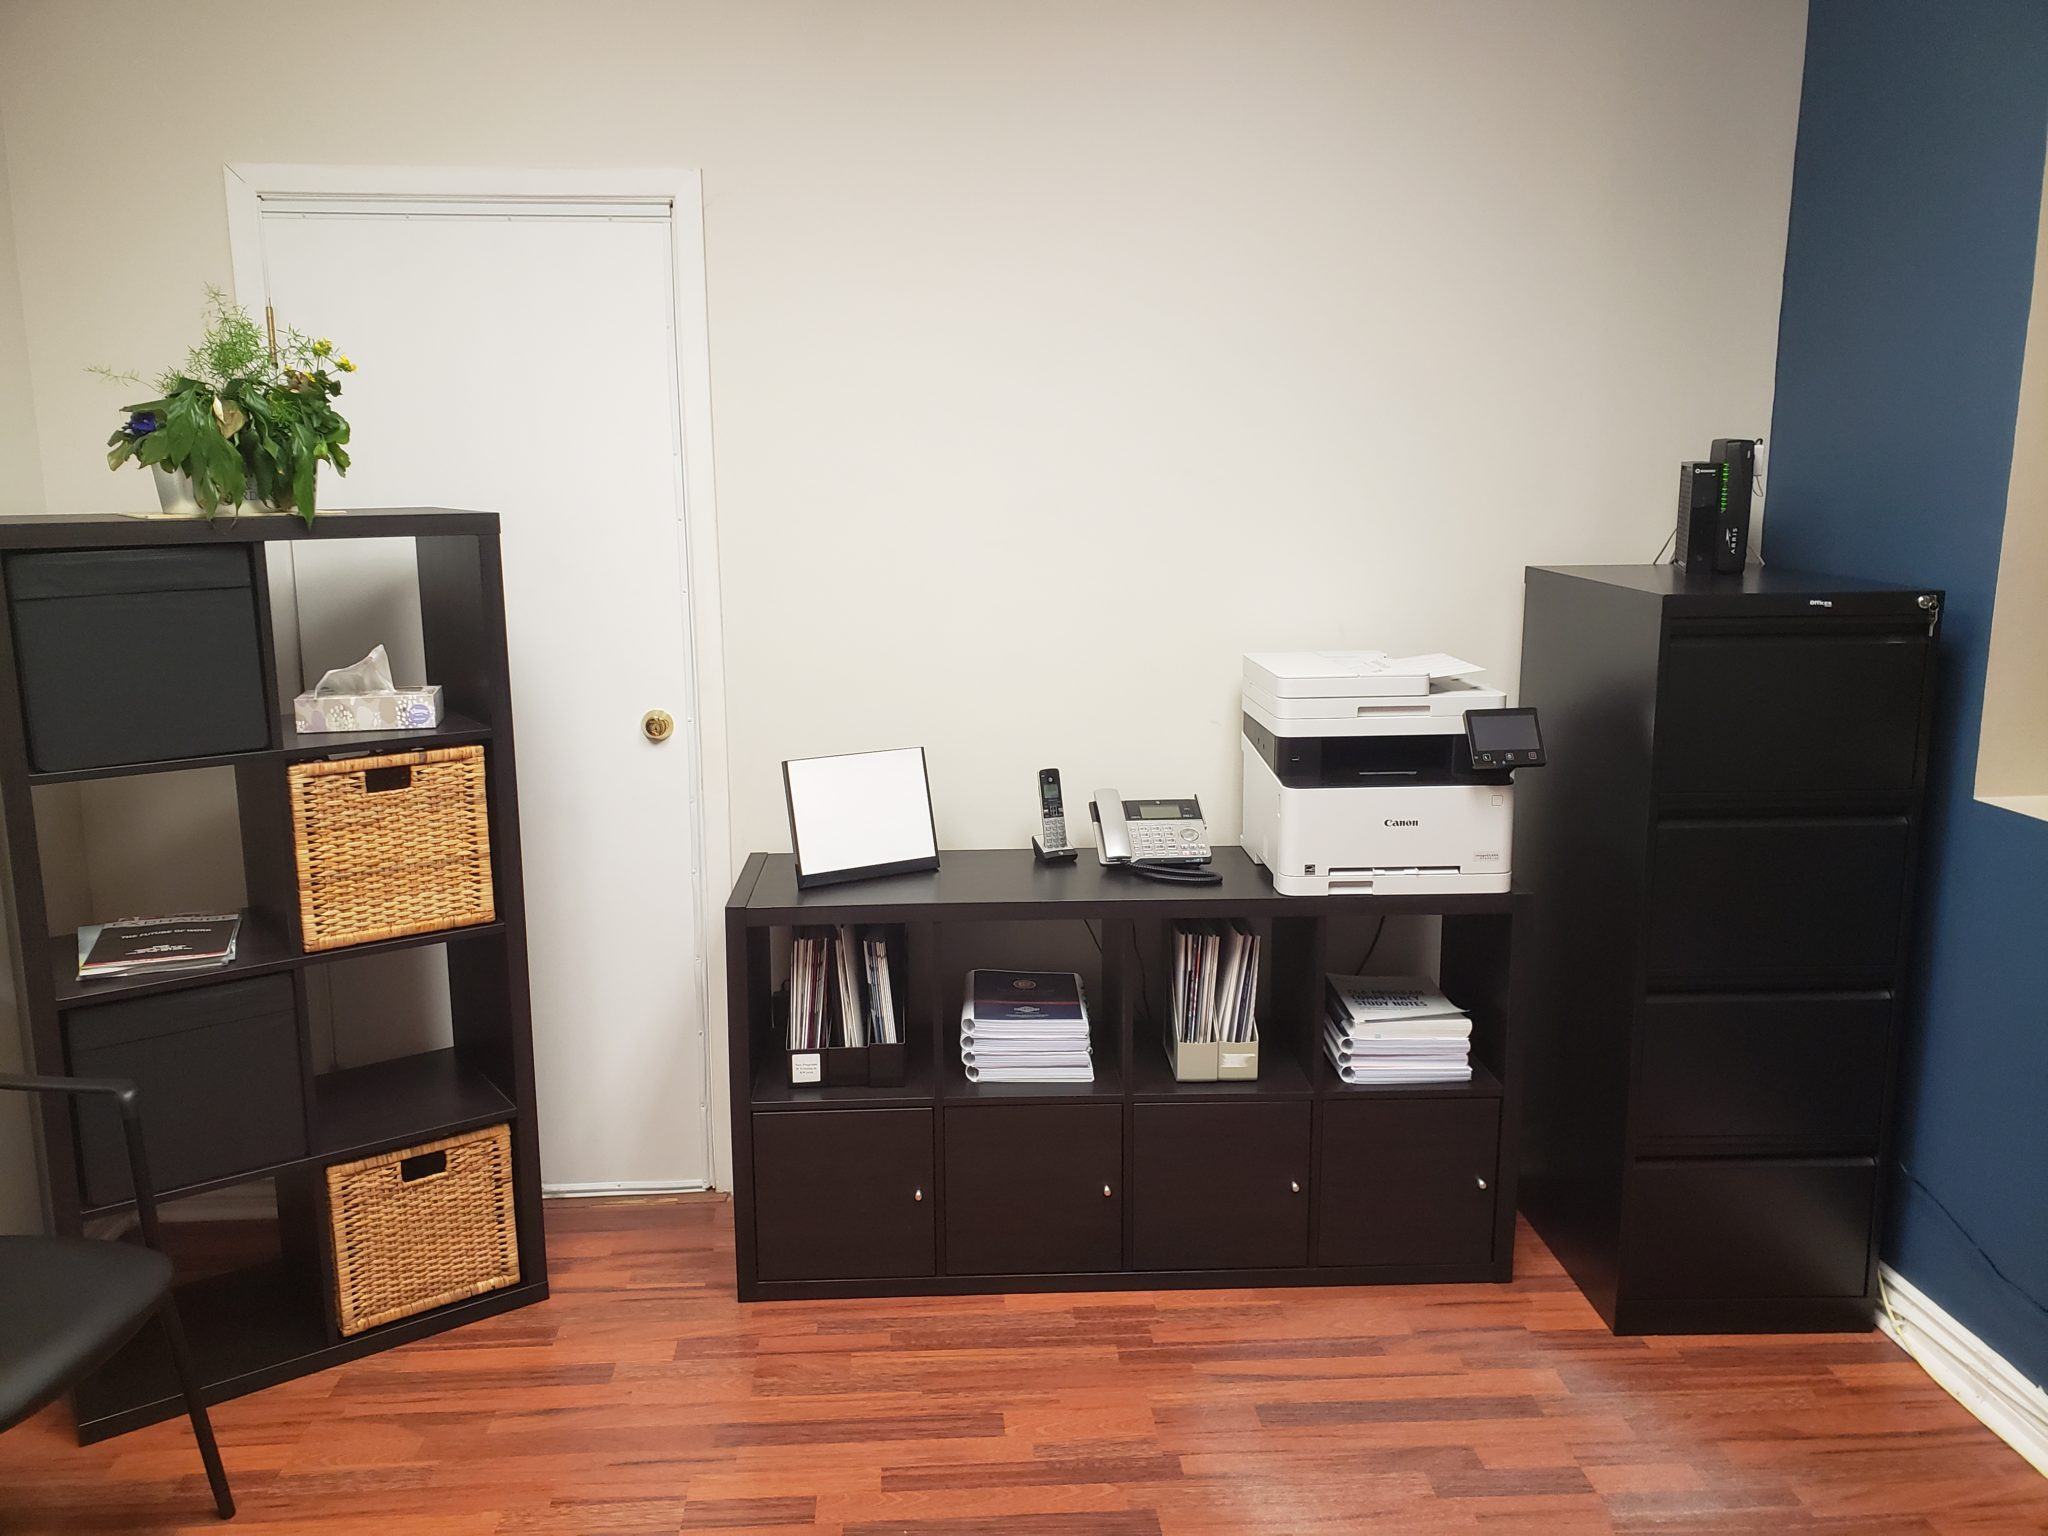 Main office - After